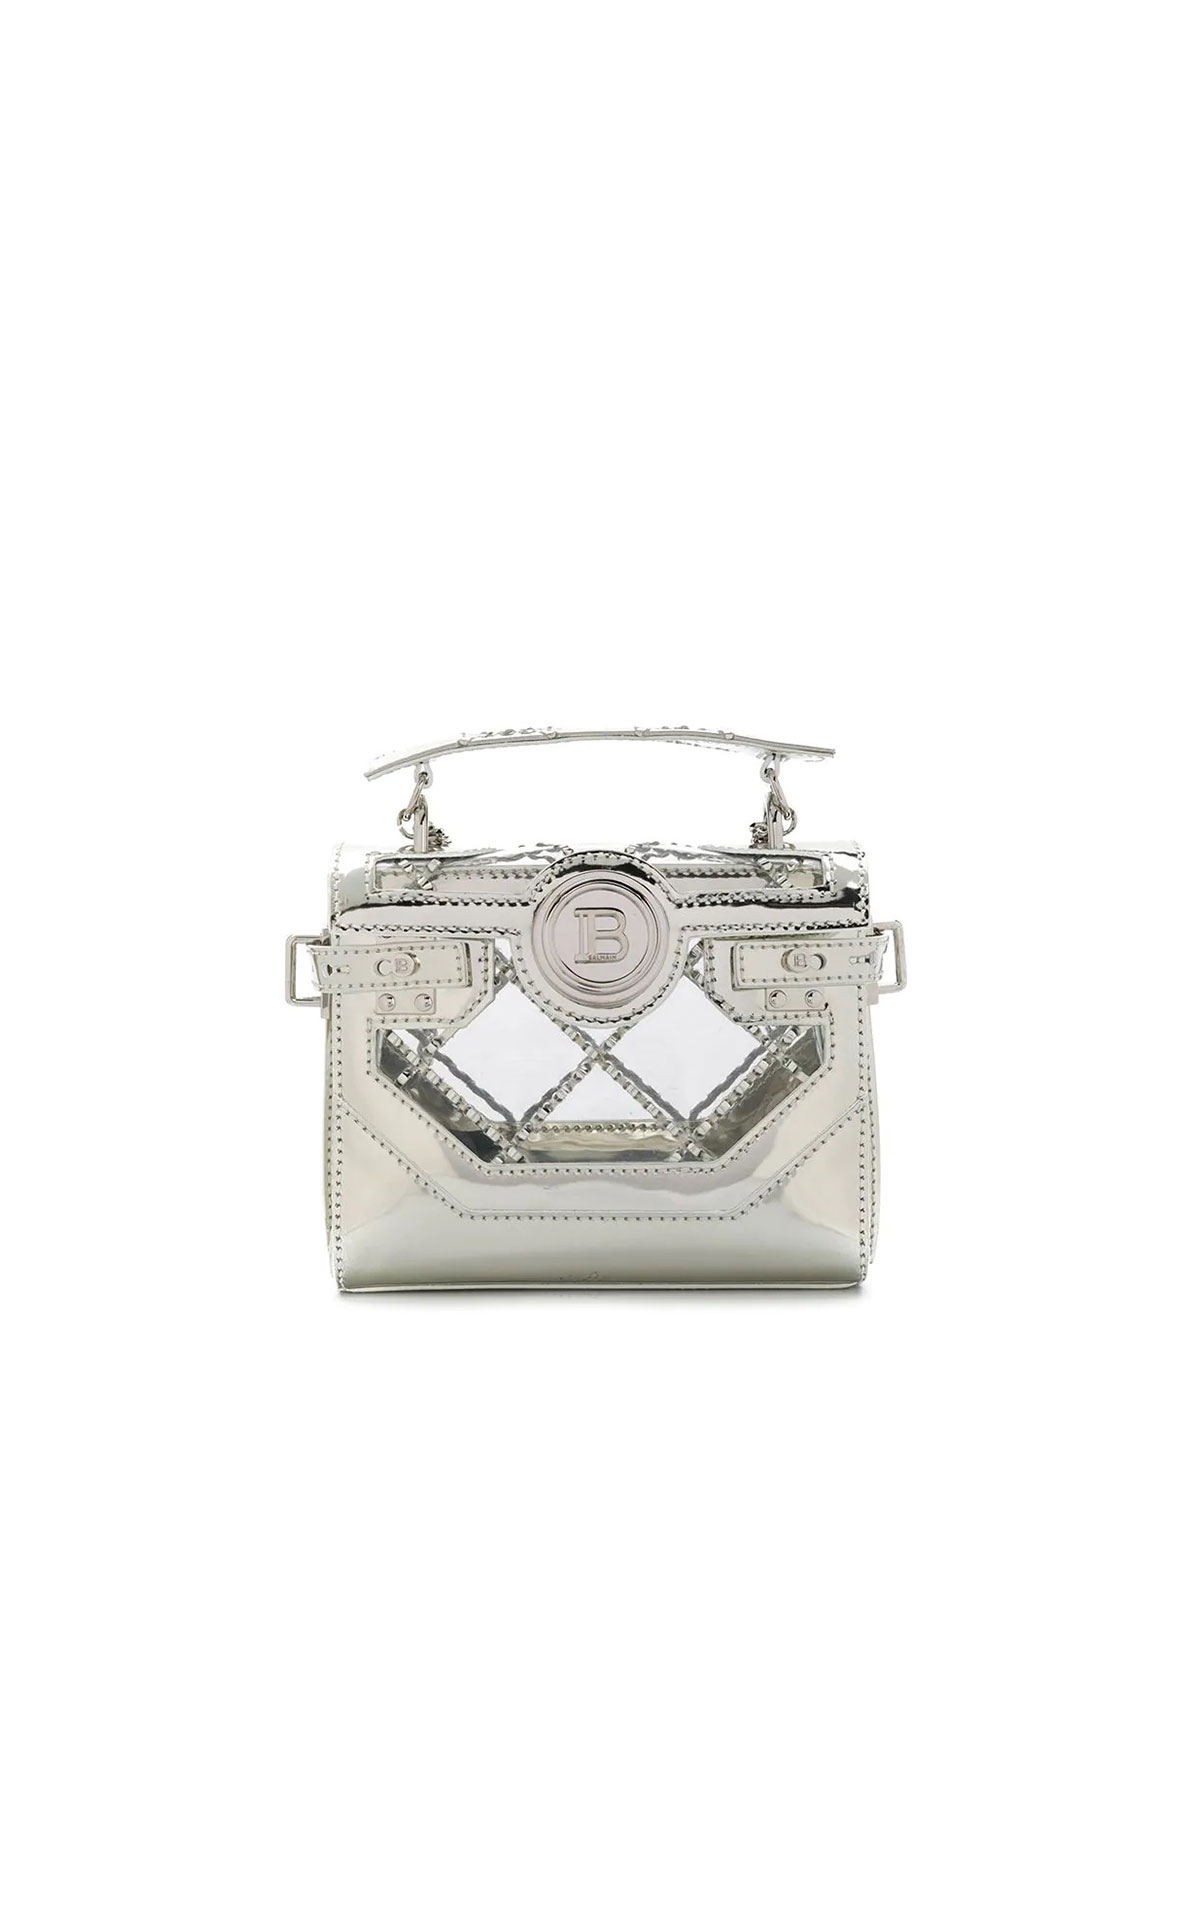 Balmain Bbuzz bacpack 18 mini bag from Bicester Village